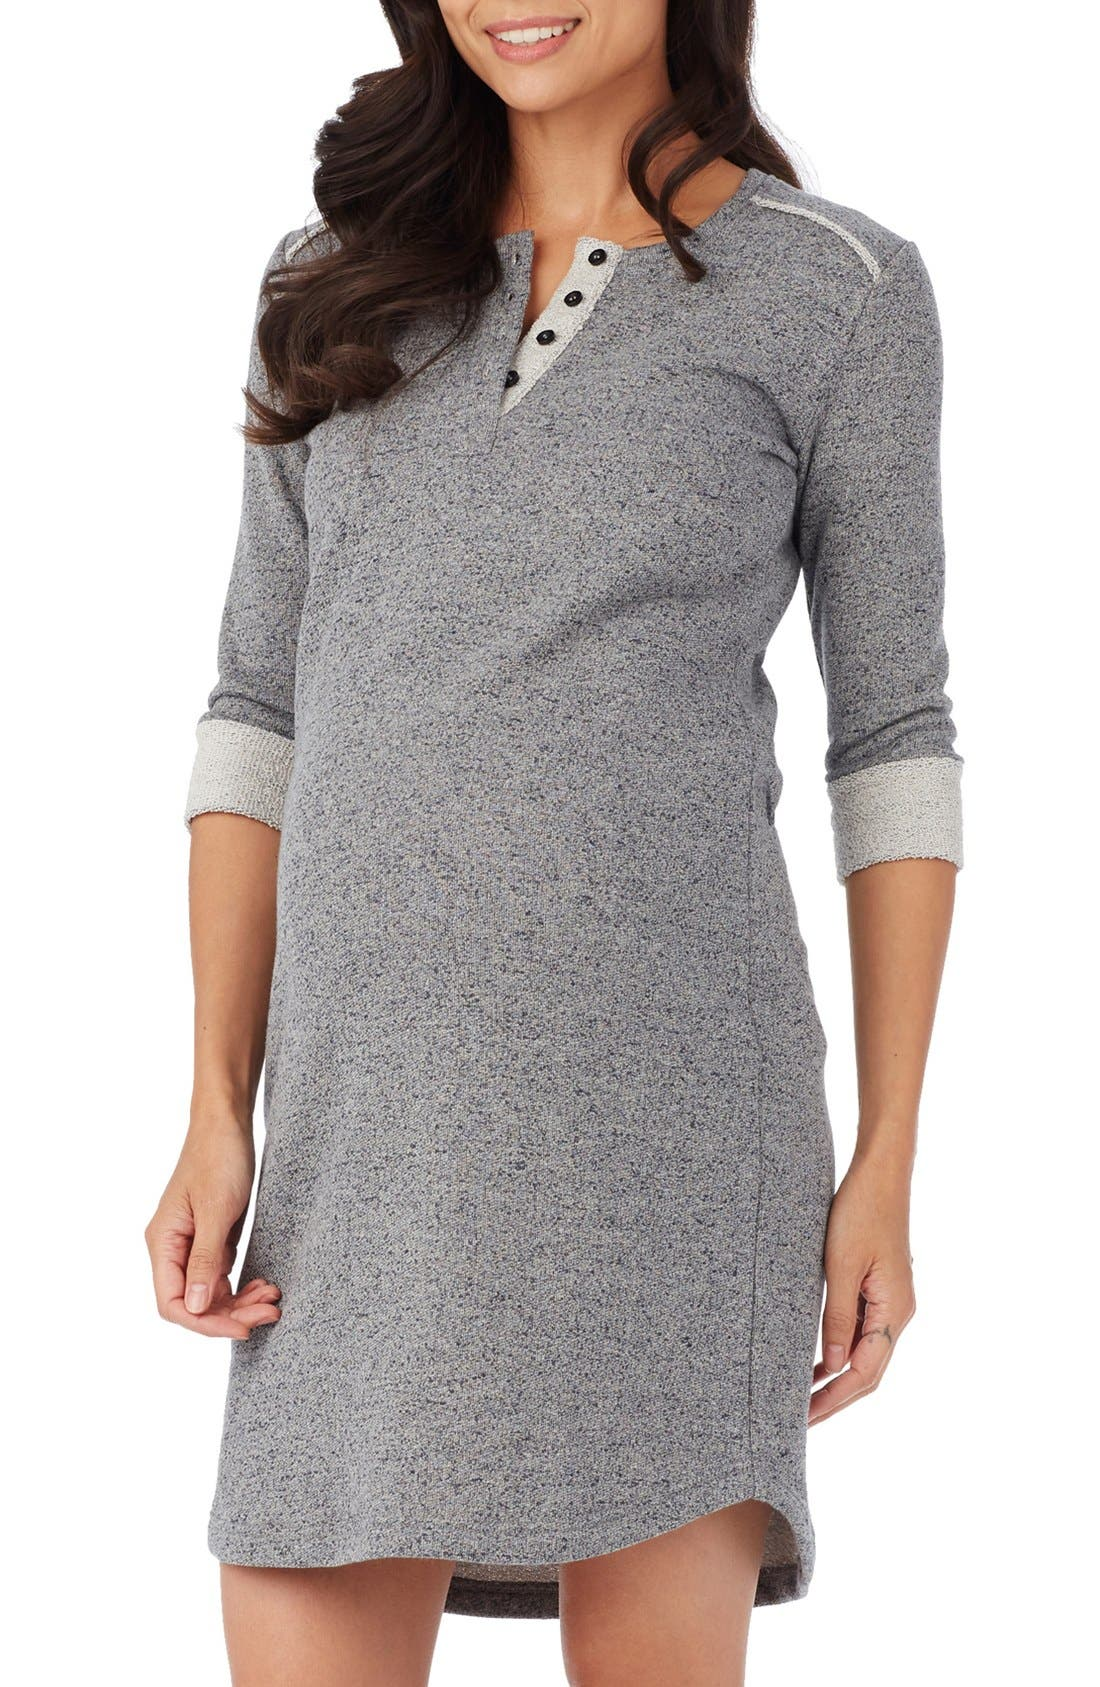 Rosie Pope 'Reese' Henley Maternity Dress